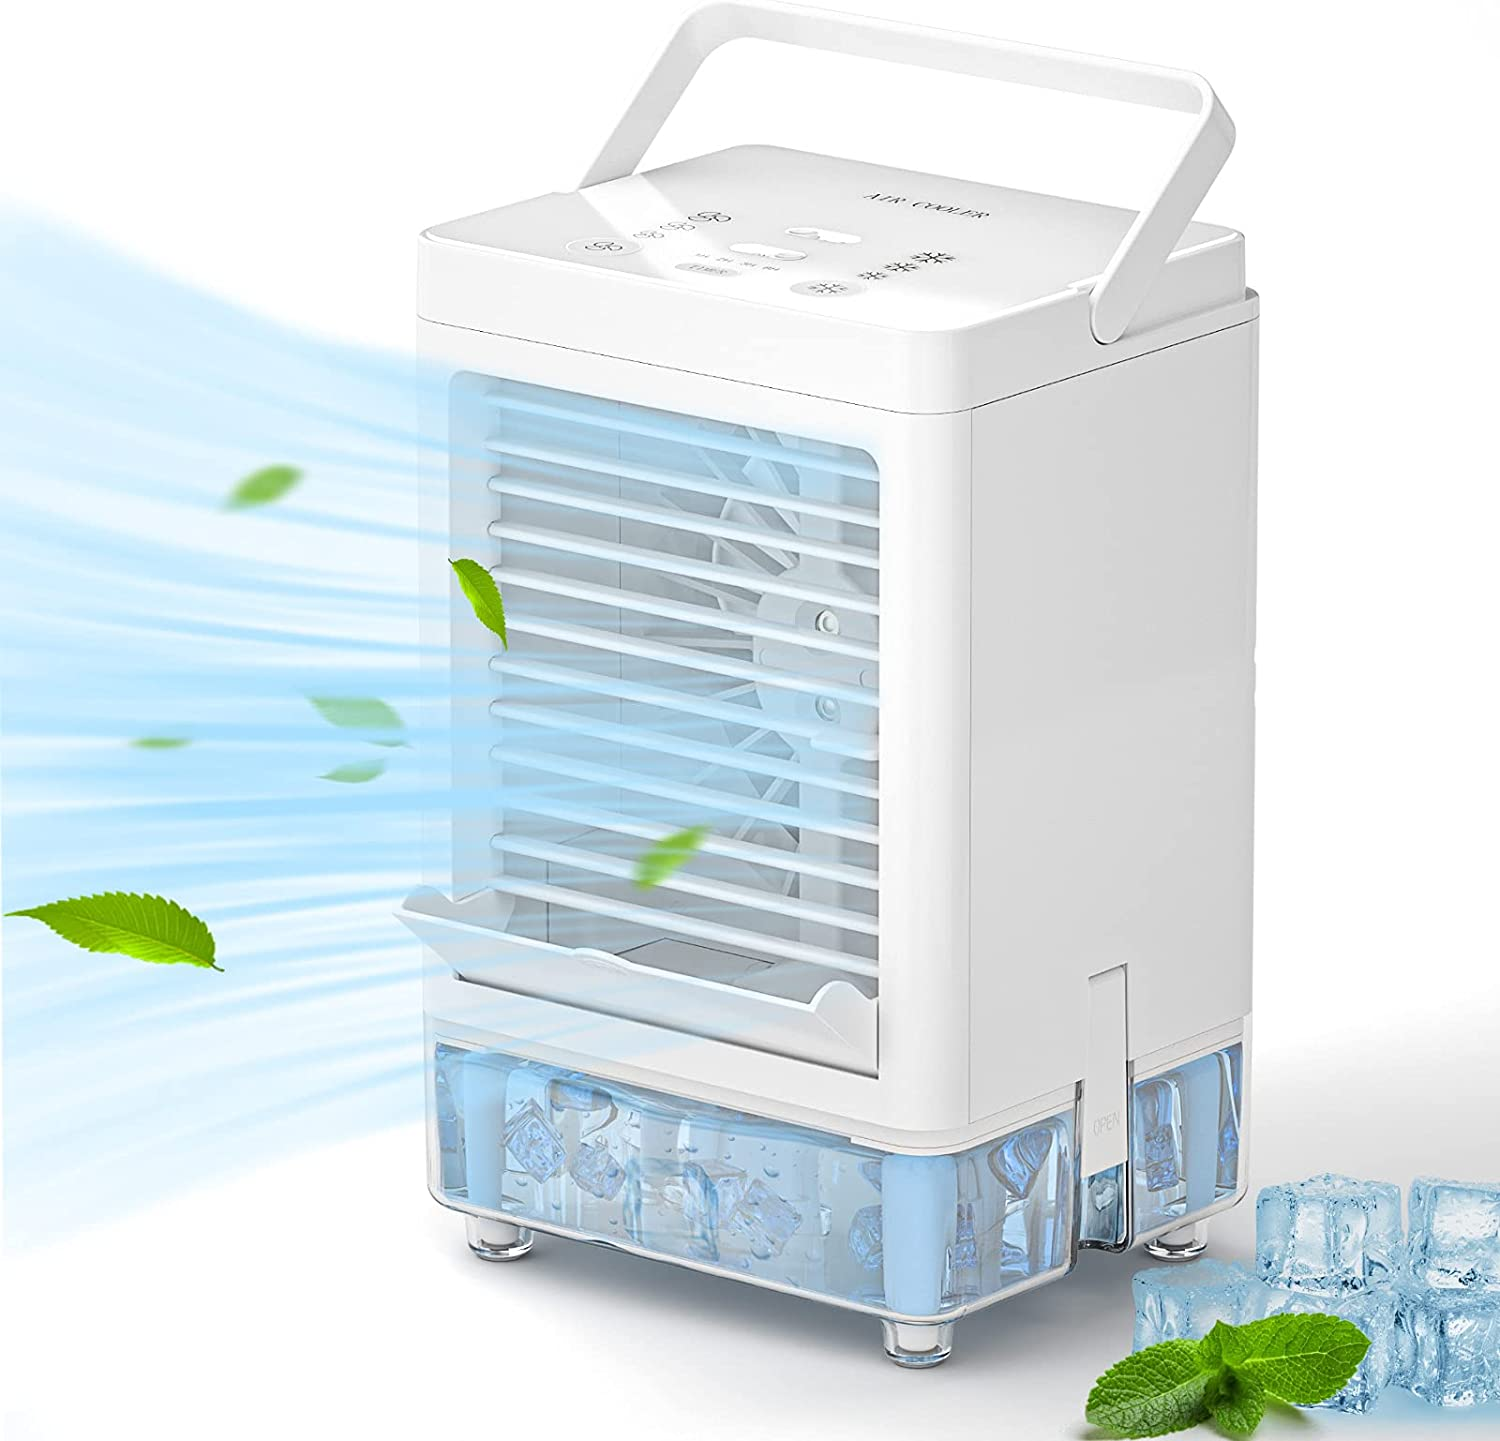 SOKOO Air Cooler Fan, Portable 5000mAh Rechargeable Battery Operated Air Conditioner Fan with 3 Wind Speed, Touch Control Cooling Fan with 800ml Water Tank Easy to Refill Water or Ice